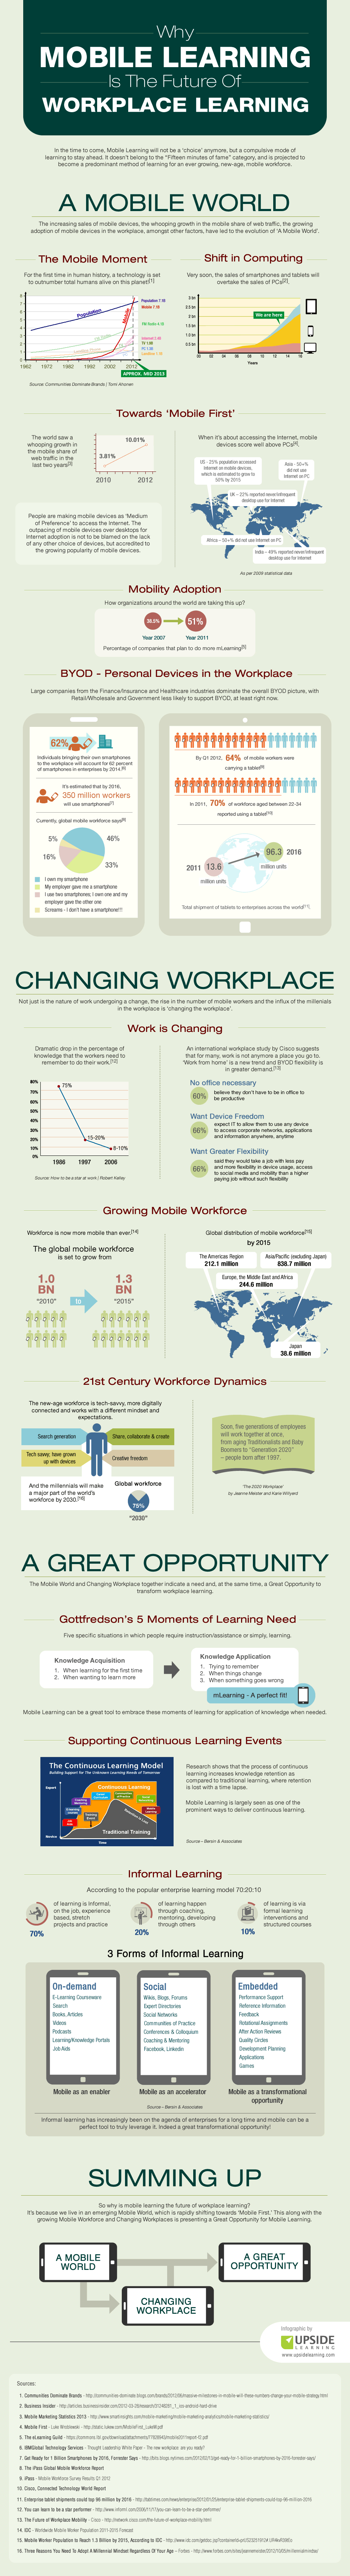 The Future Of Workplace Learning is Mobile Learning Infographic